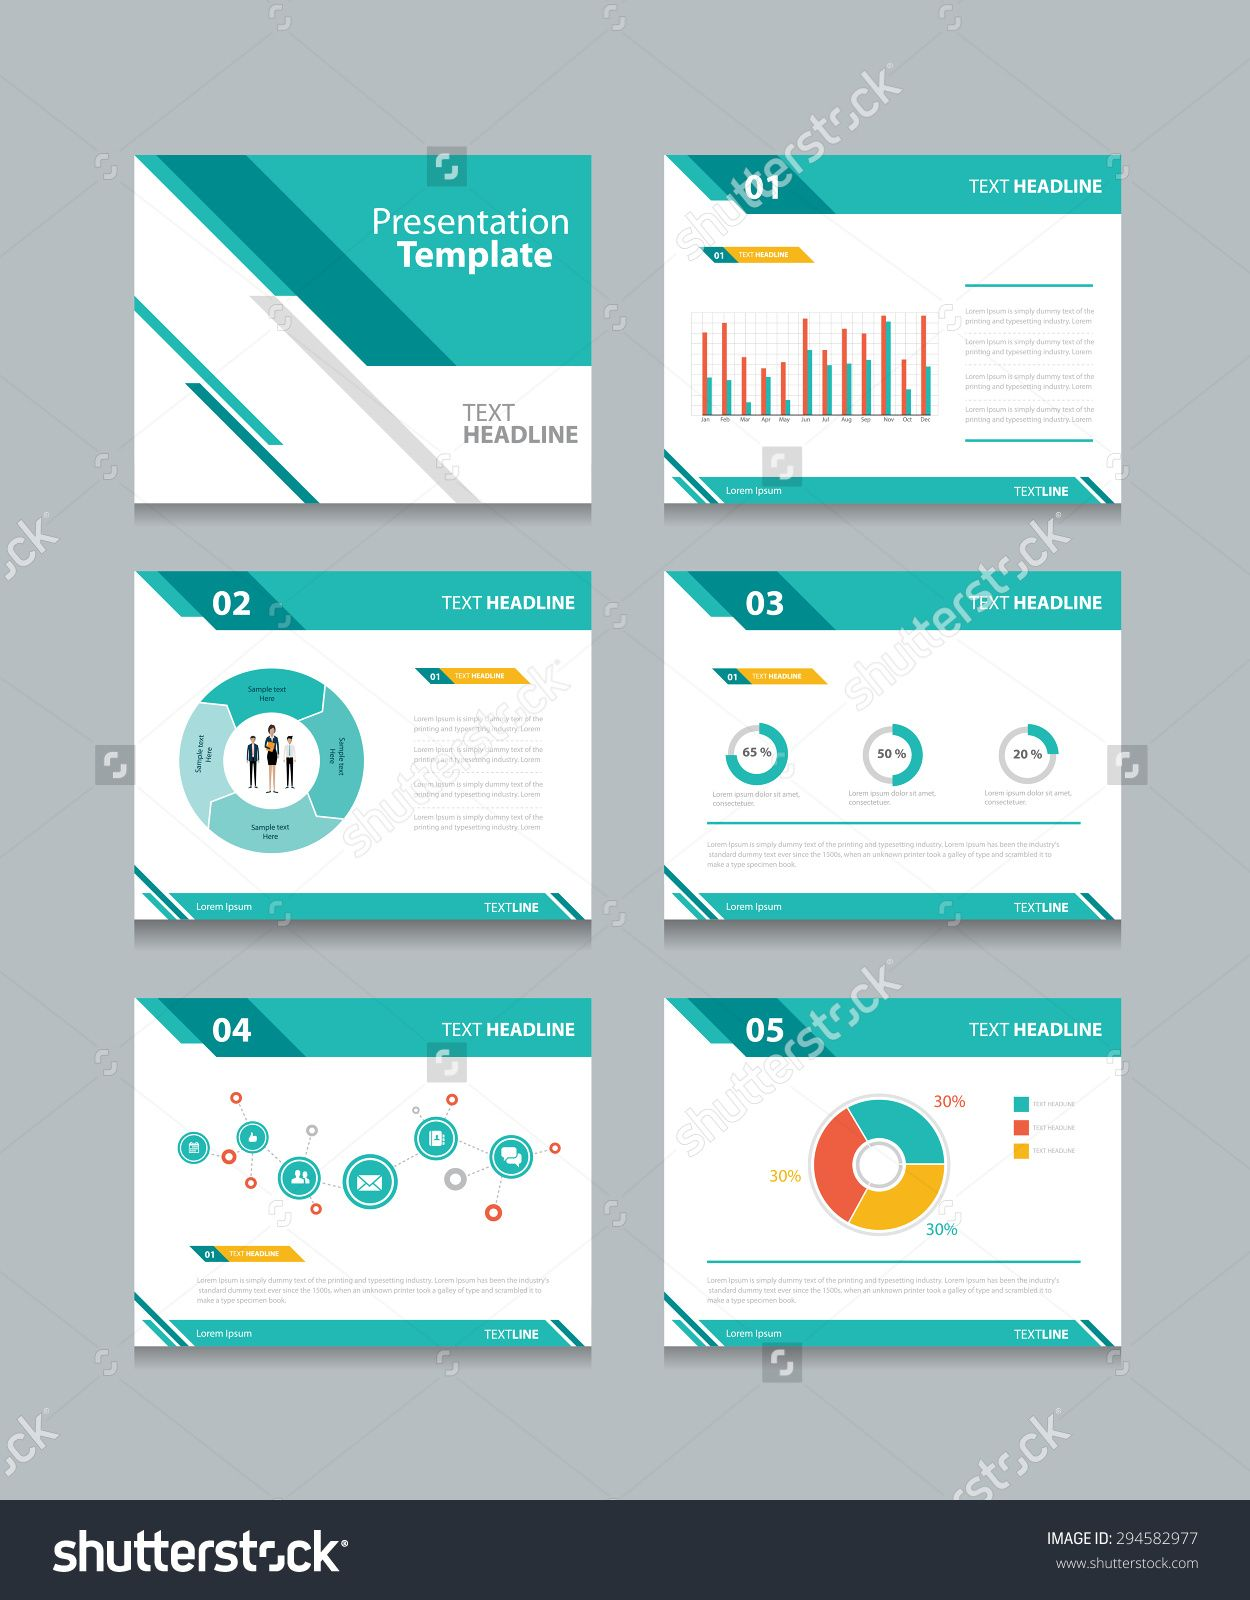 Powerpoint templates for business presentations selowithjo business presentation template set powerpoint template design cheaphphosting Choice Image